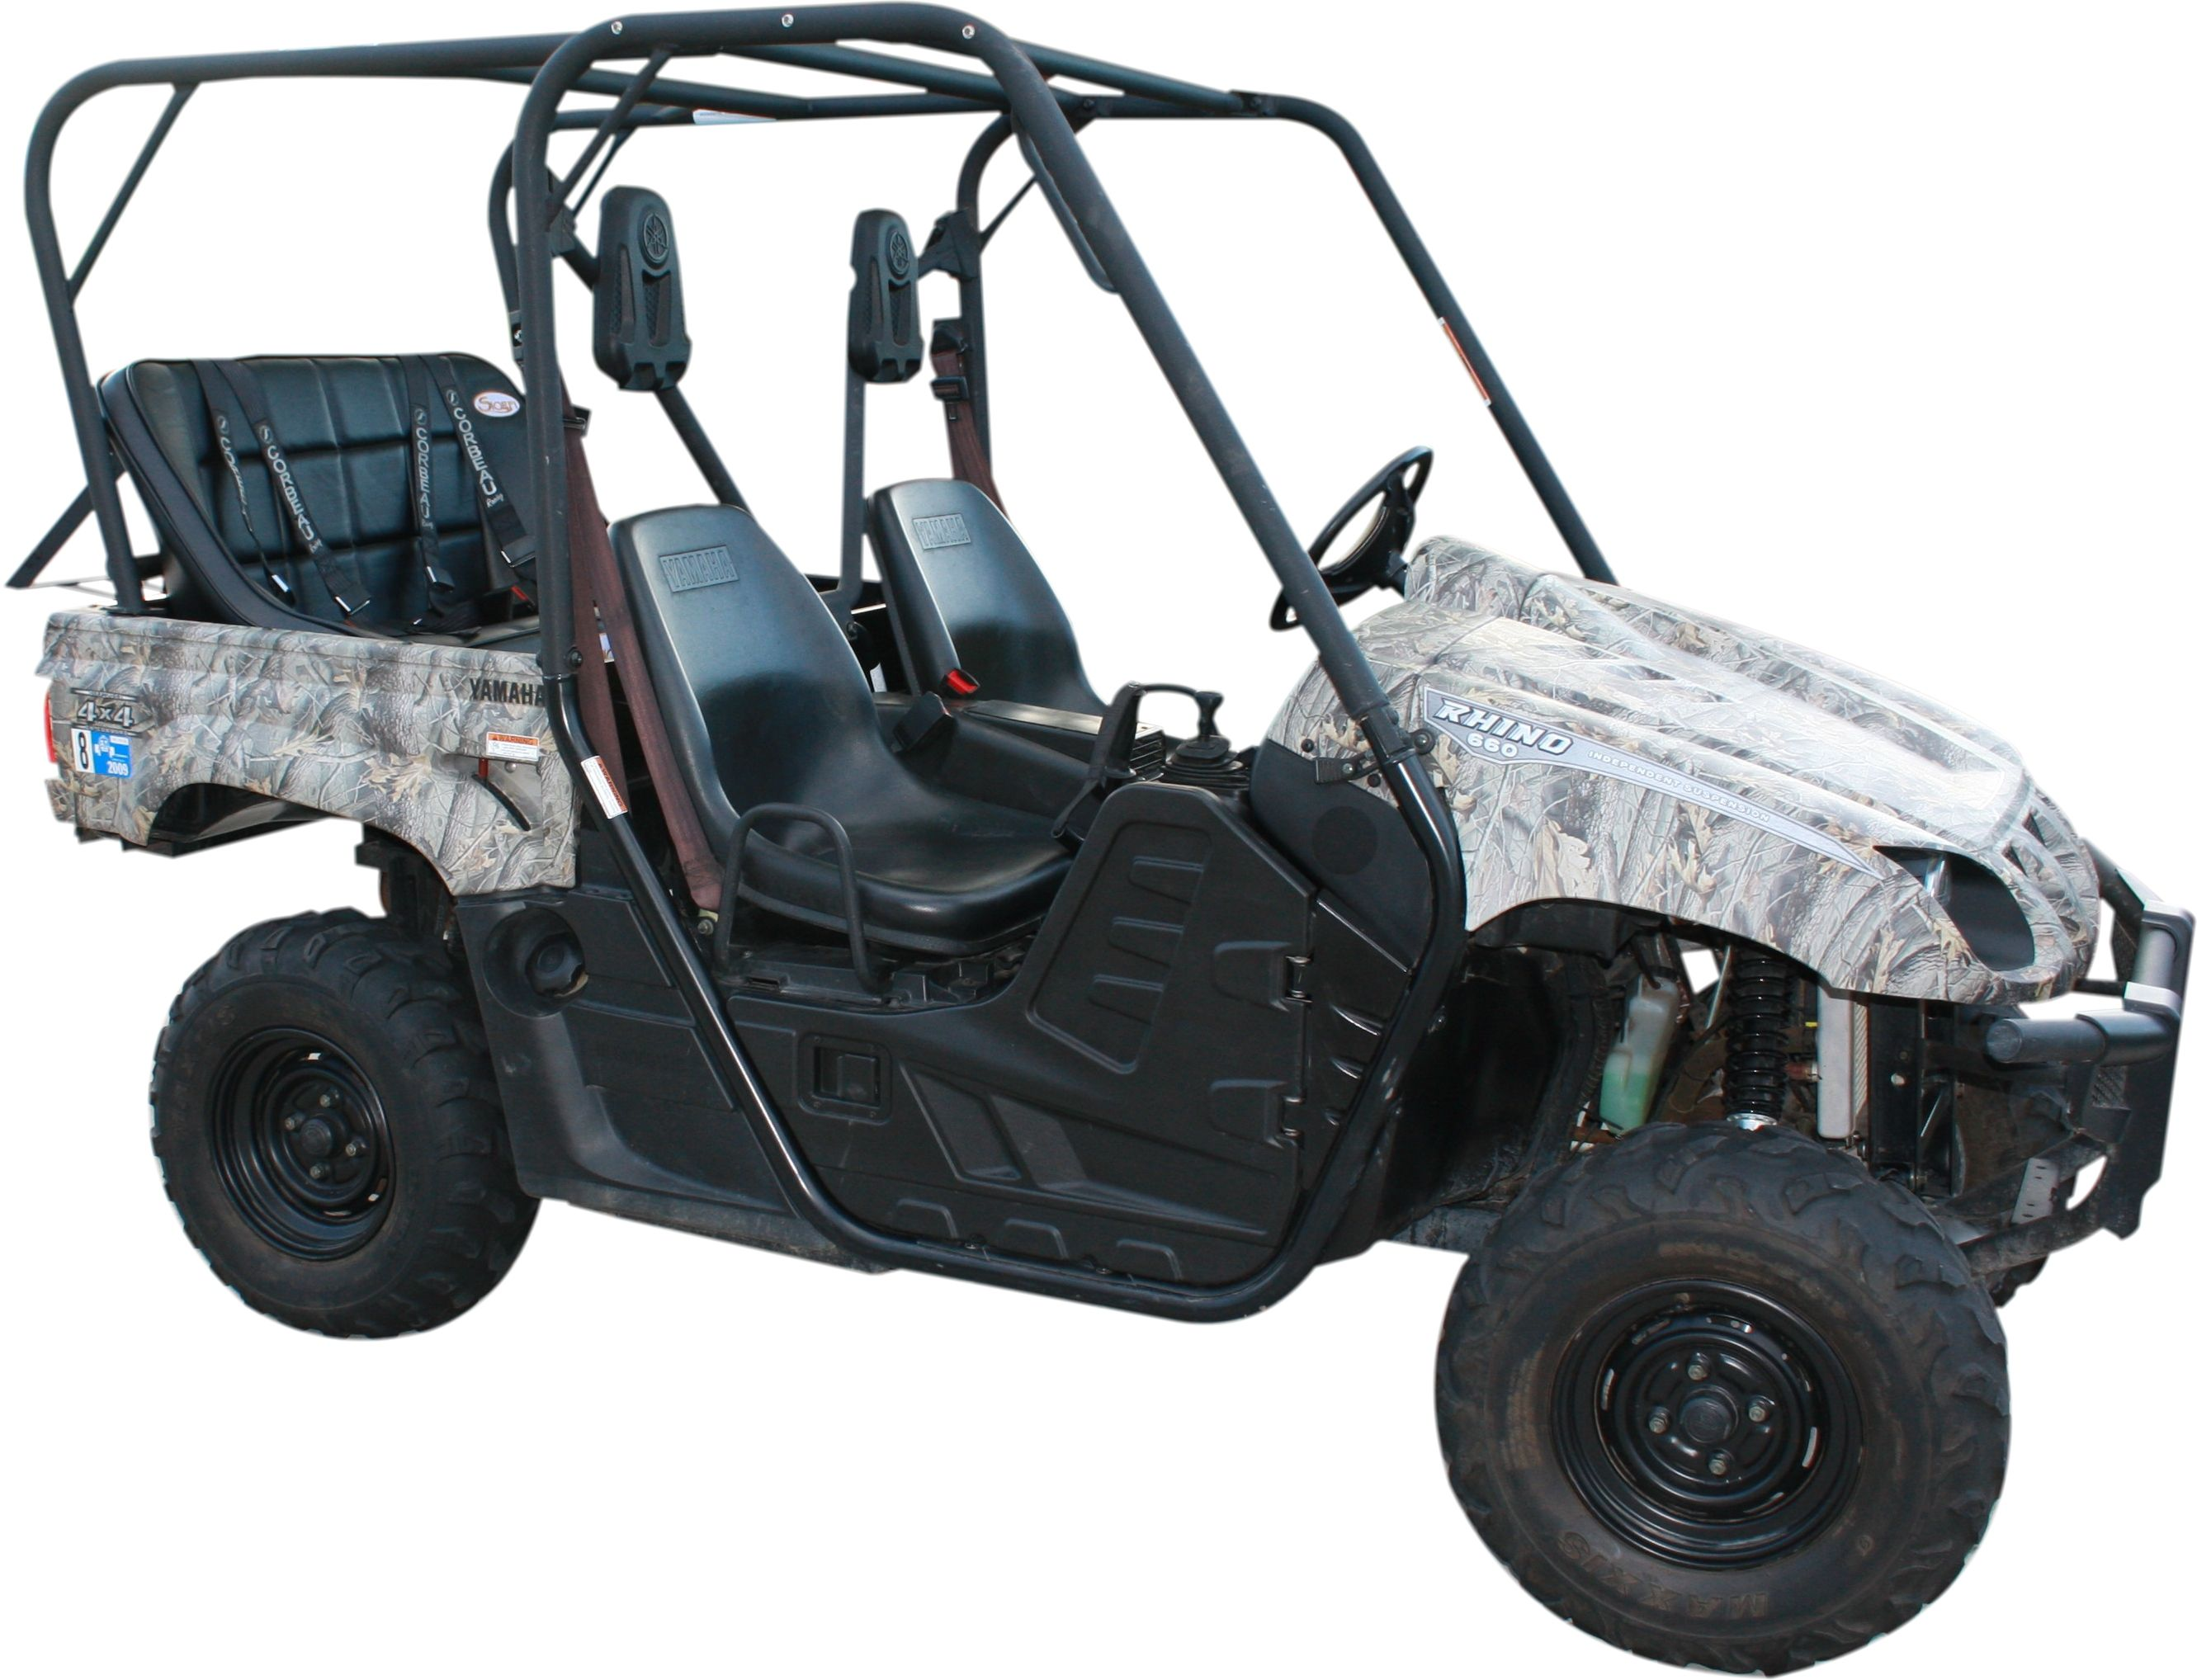 Yamaha rhino back seat and roll cage kit